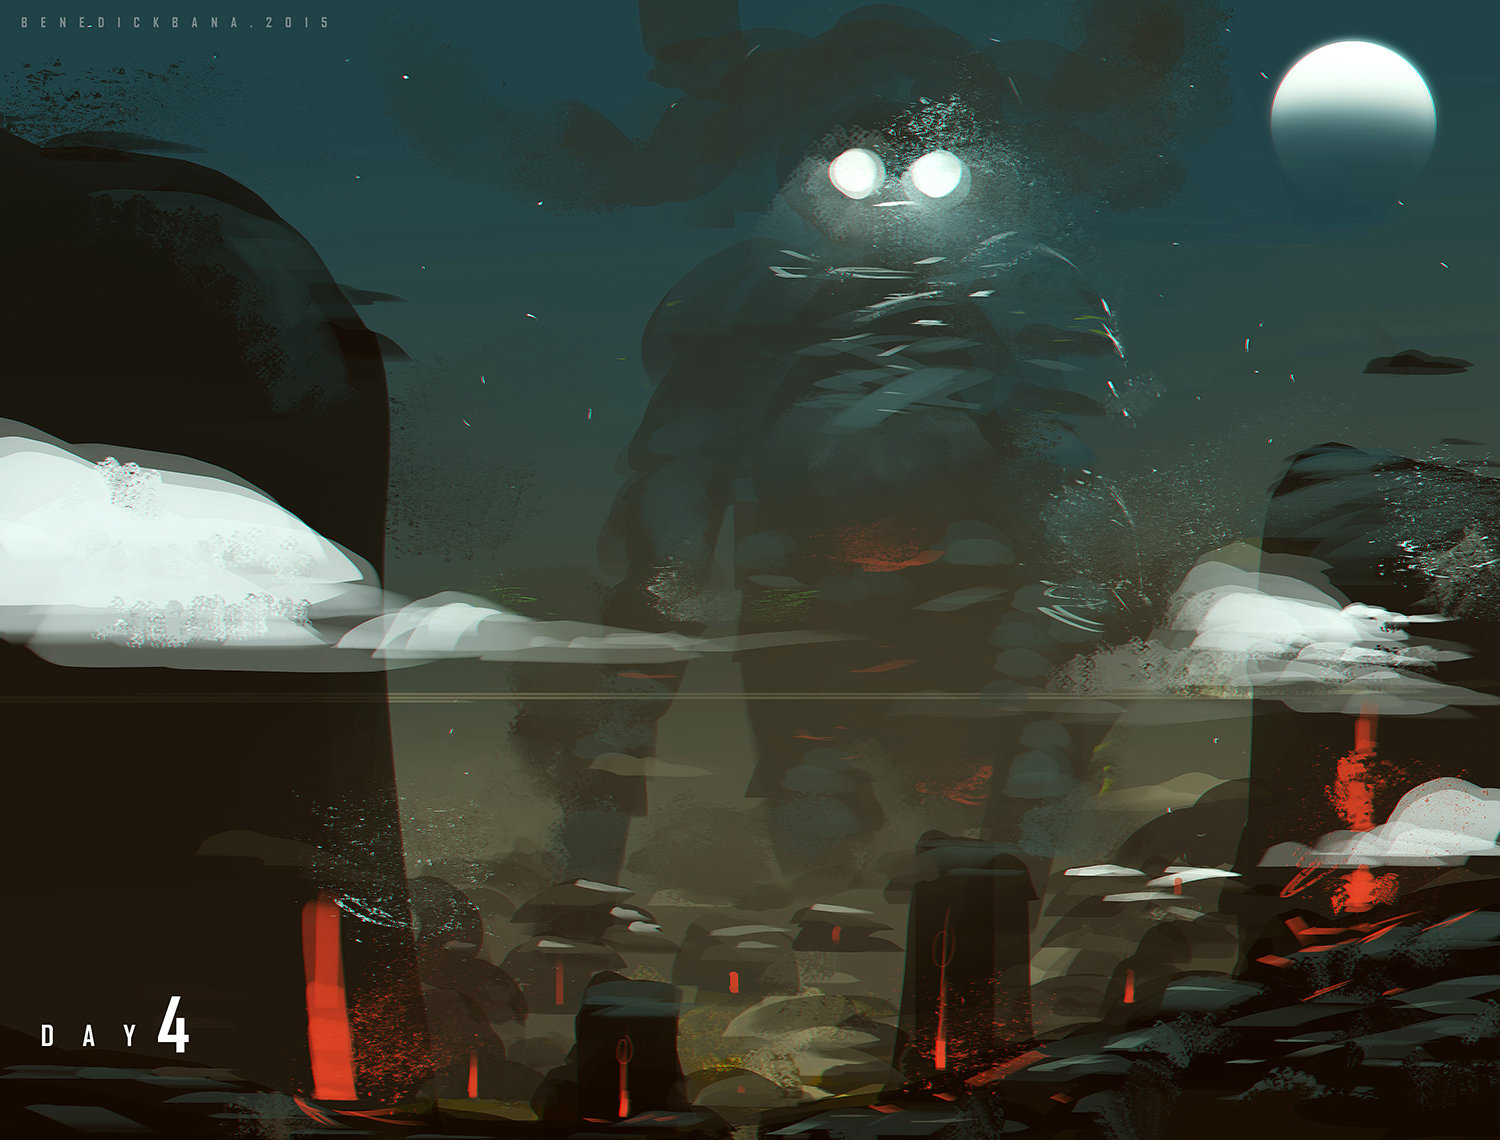 Benedick bana the ancient one lores